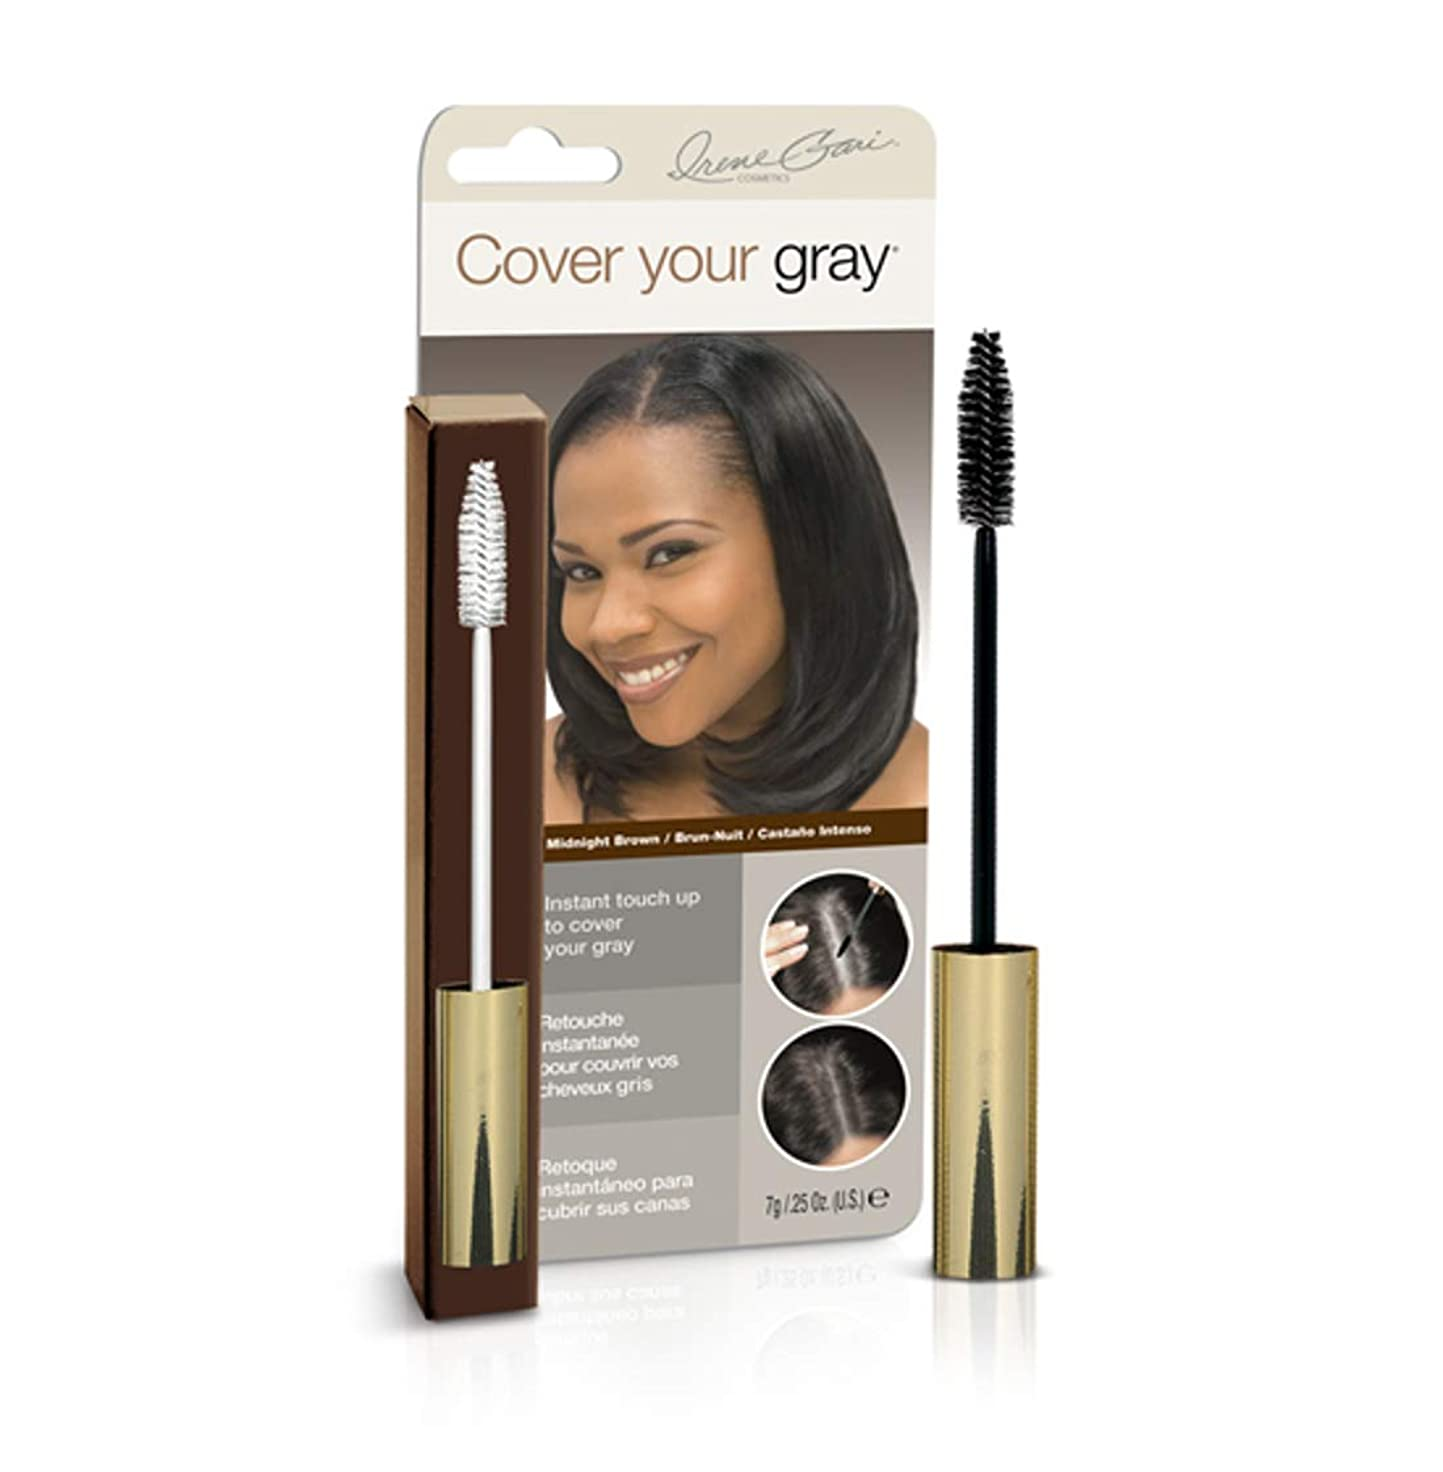 中級発火するしないCover Your Gray Brush In Wand (Pack of 6) Midnight Brown (並行輸入品)